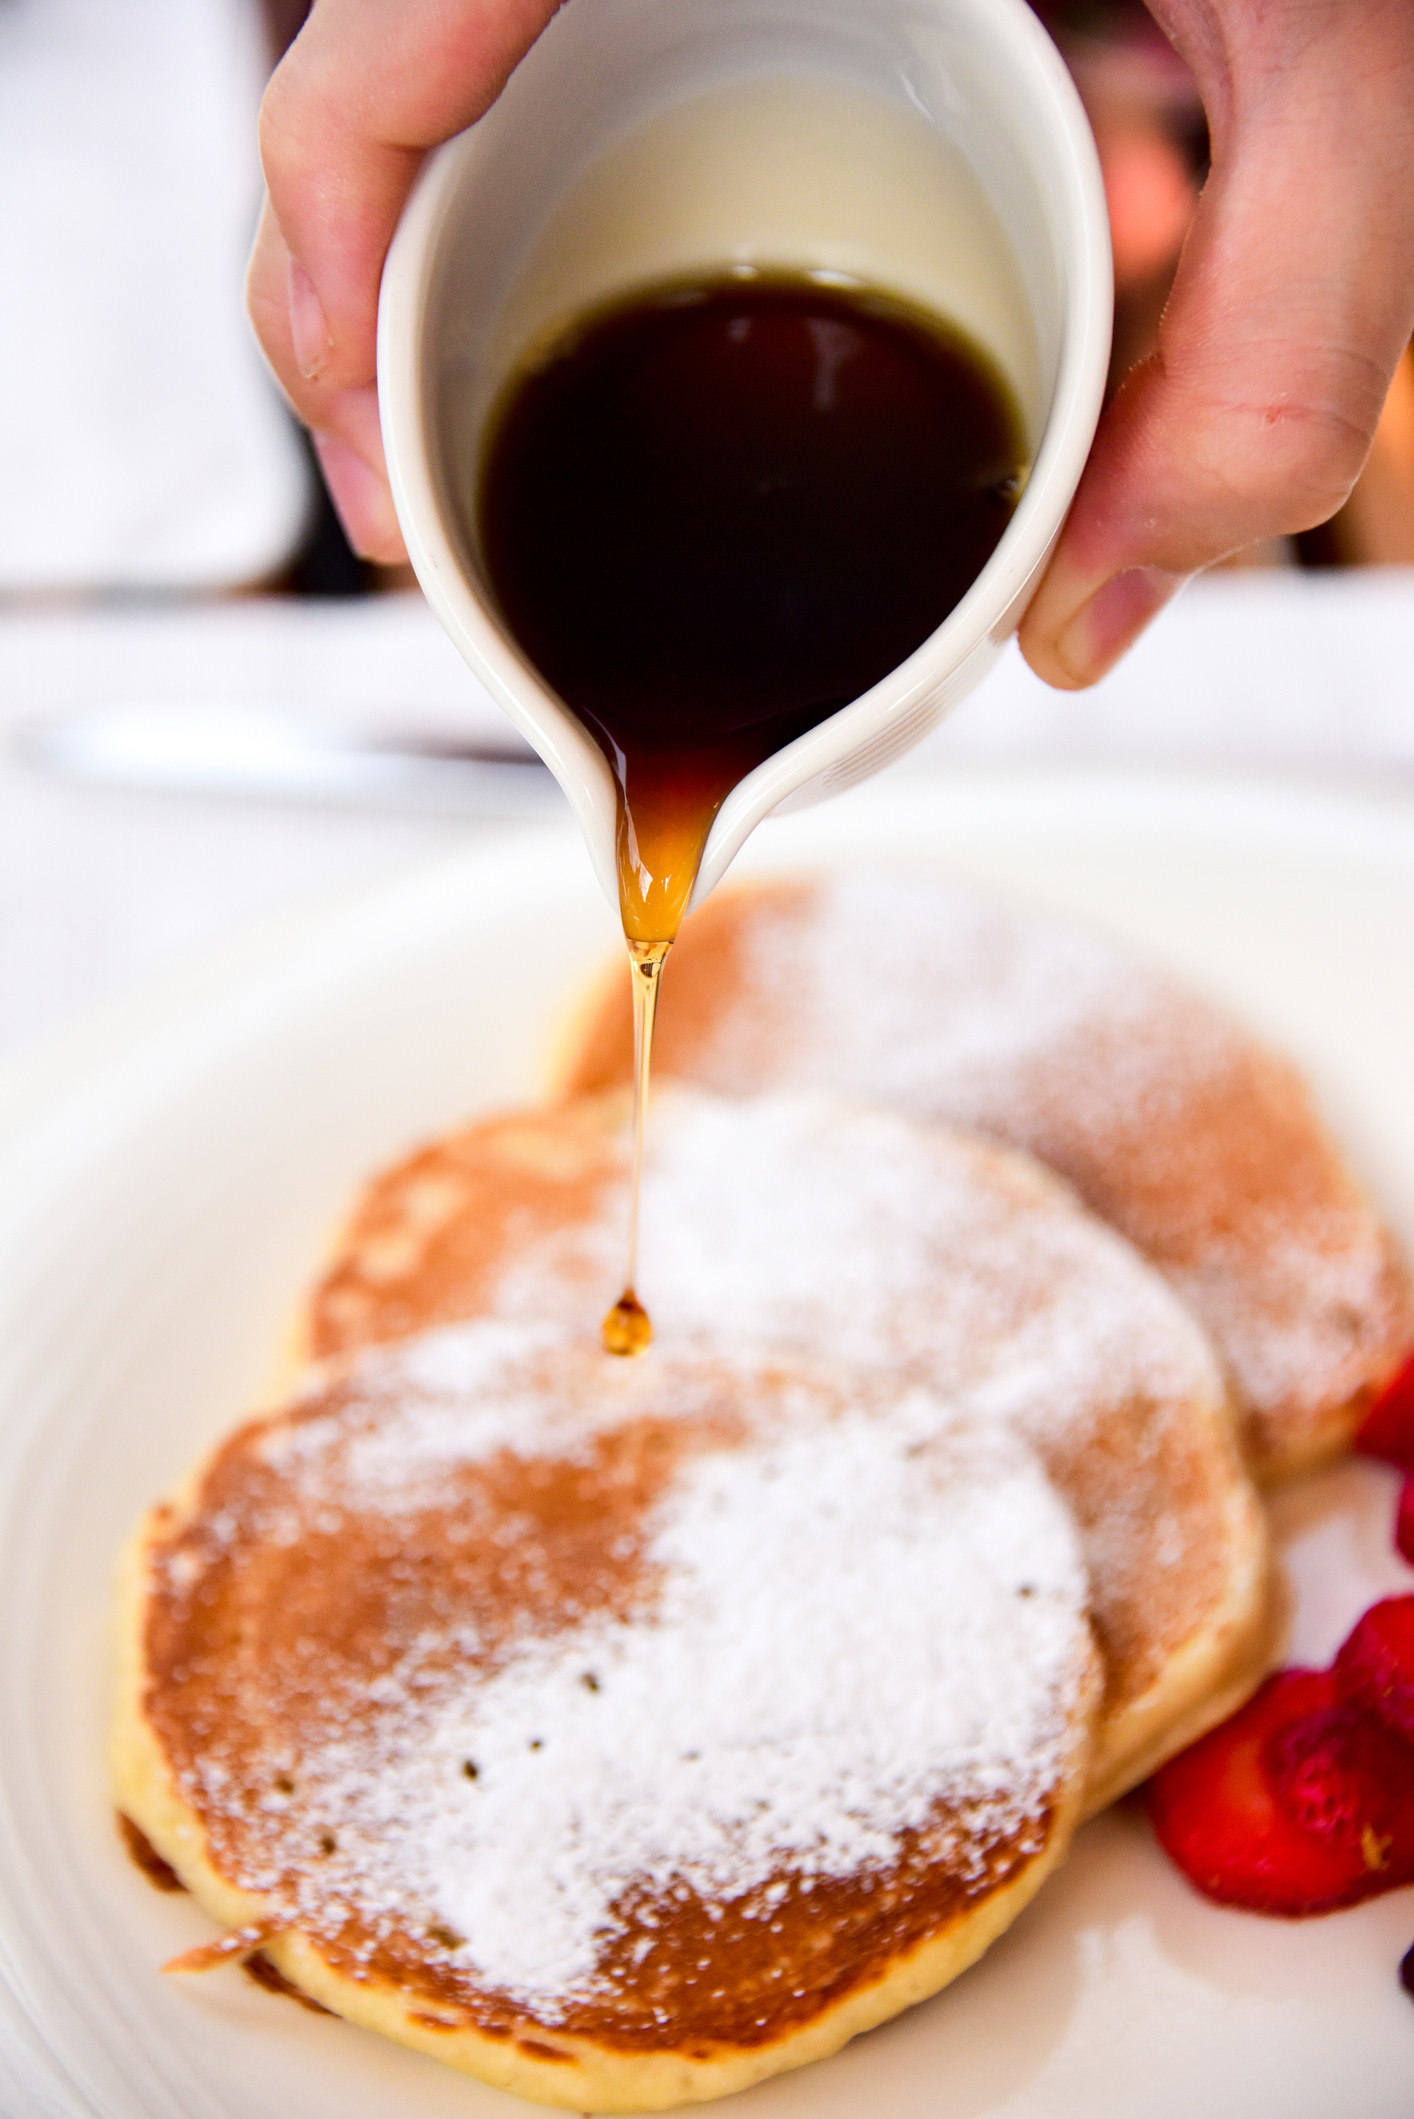 Pouring syrup onto pancakes.